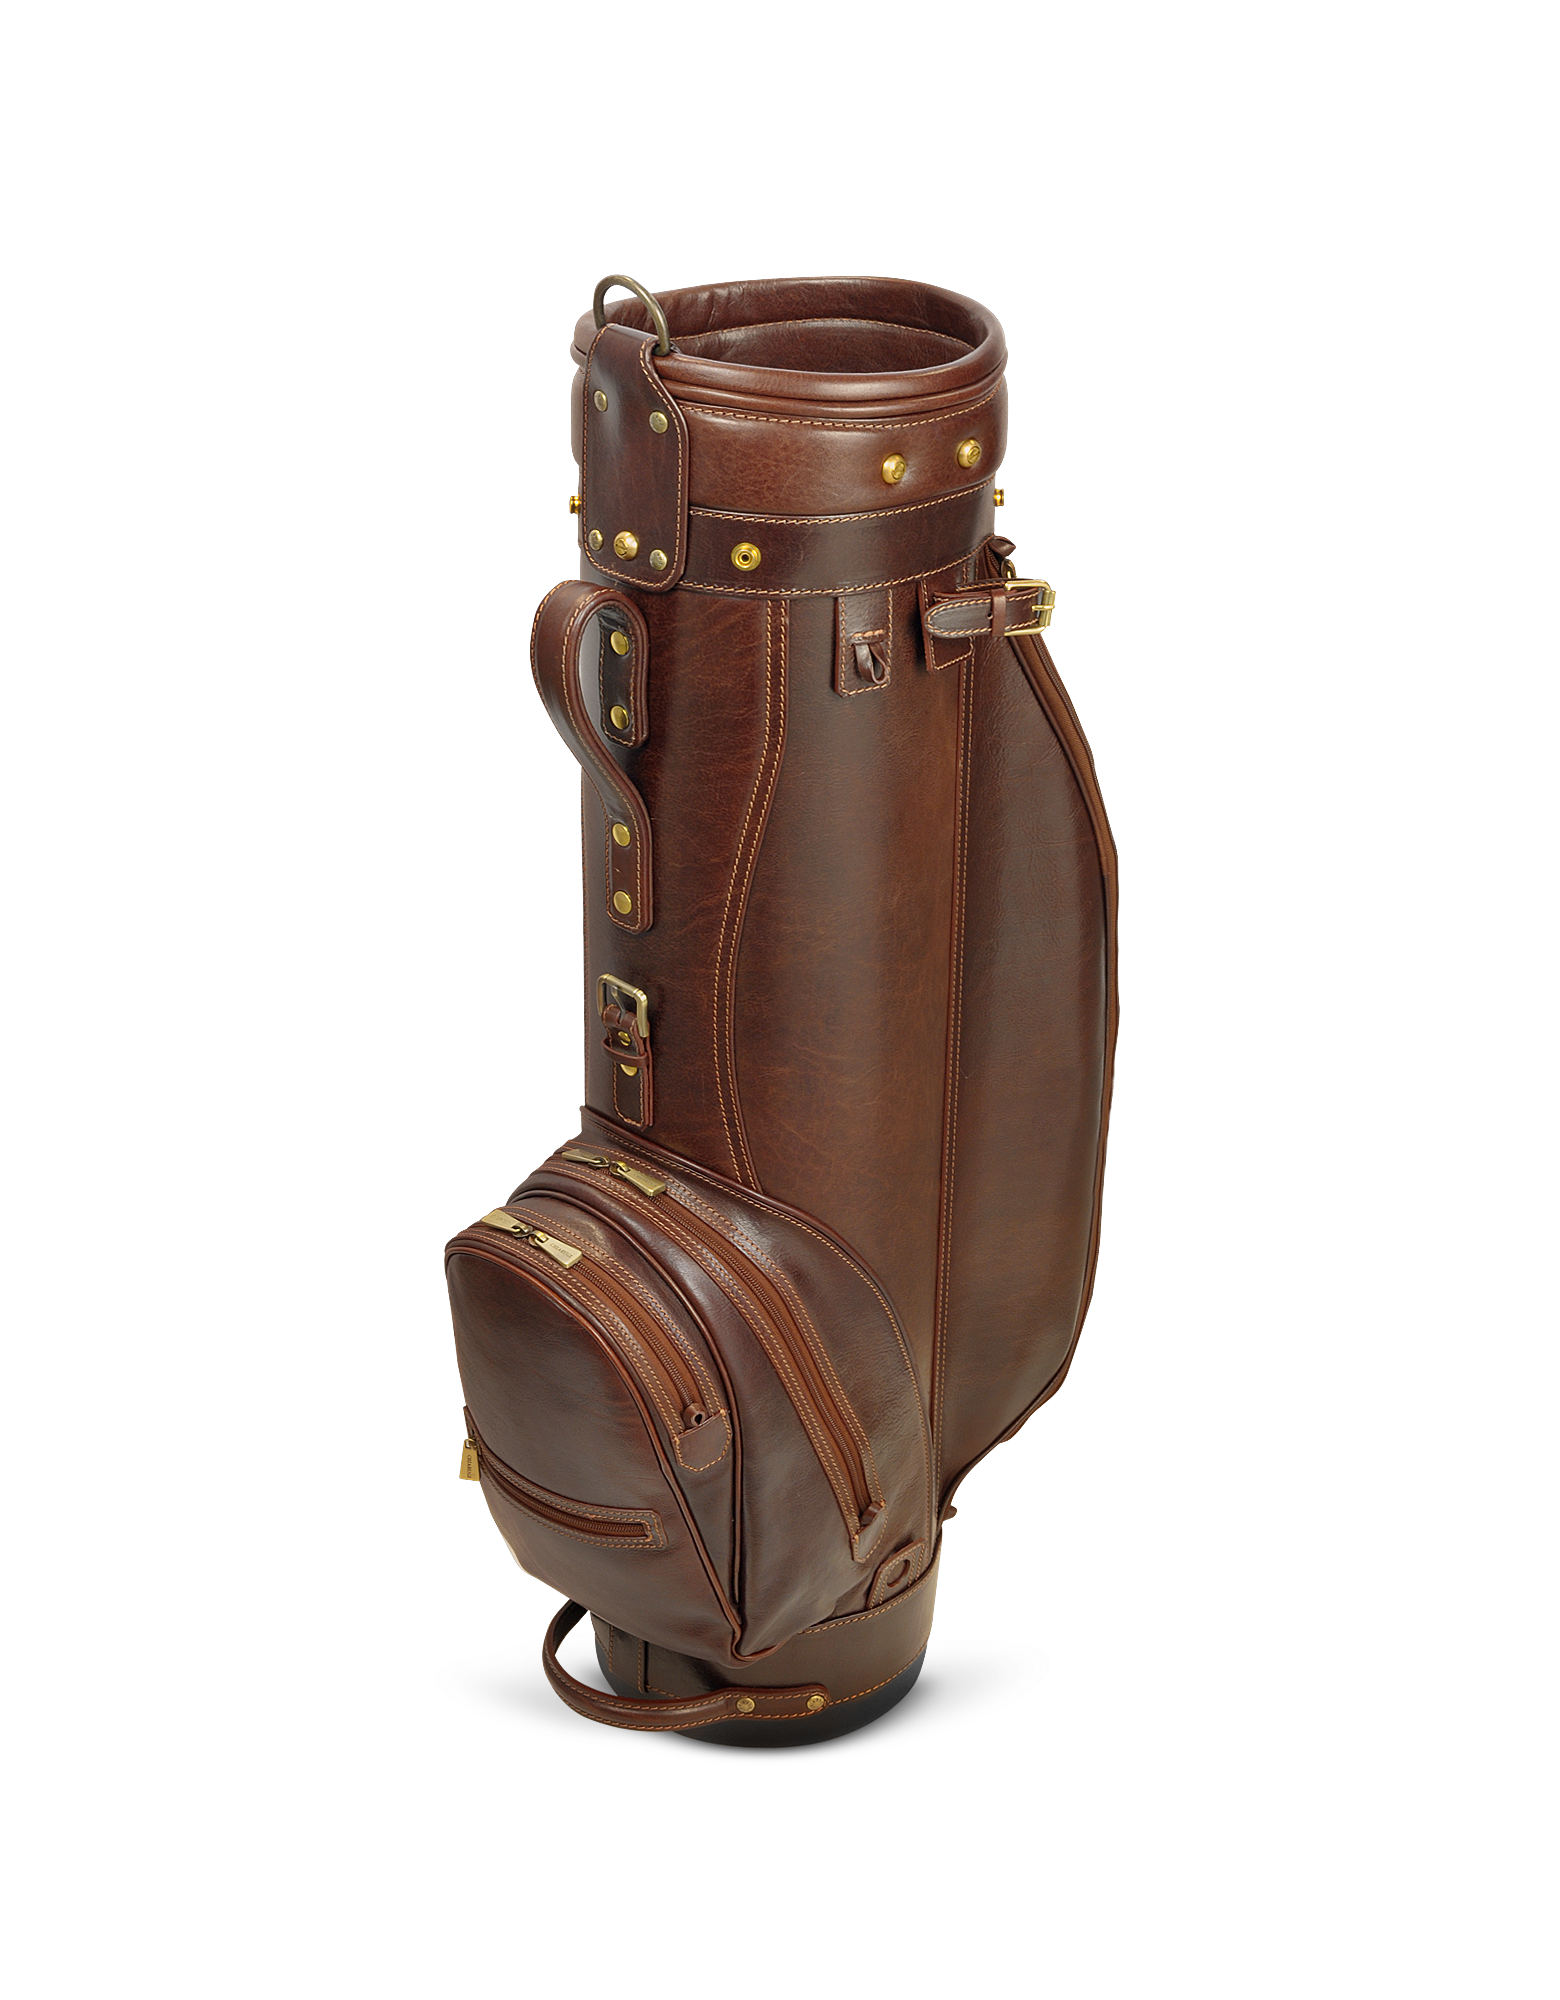 Image of Prestige 8 Genuine Italian Leather Golf Bag